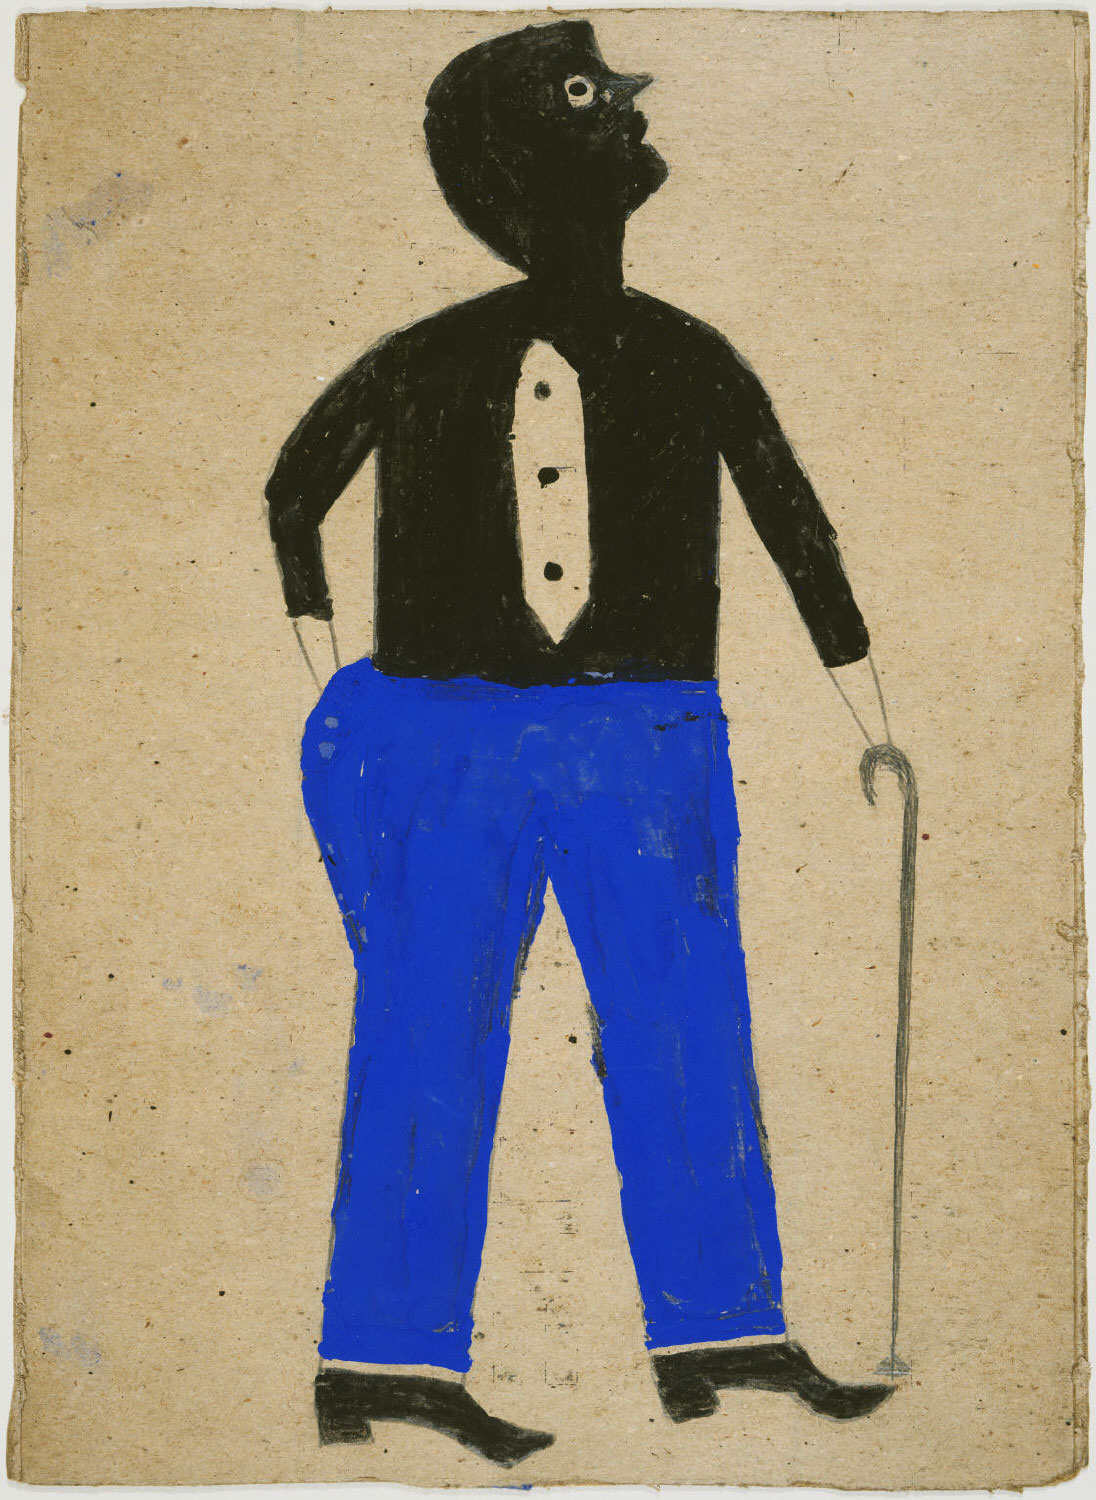 Man with Blue Pants